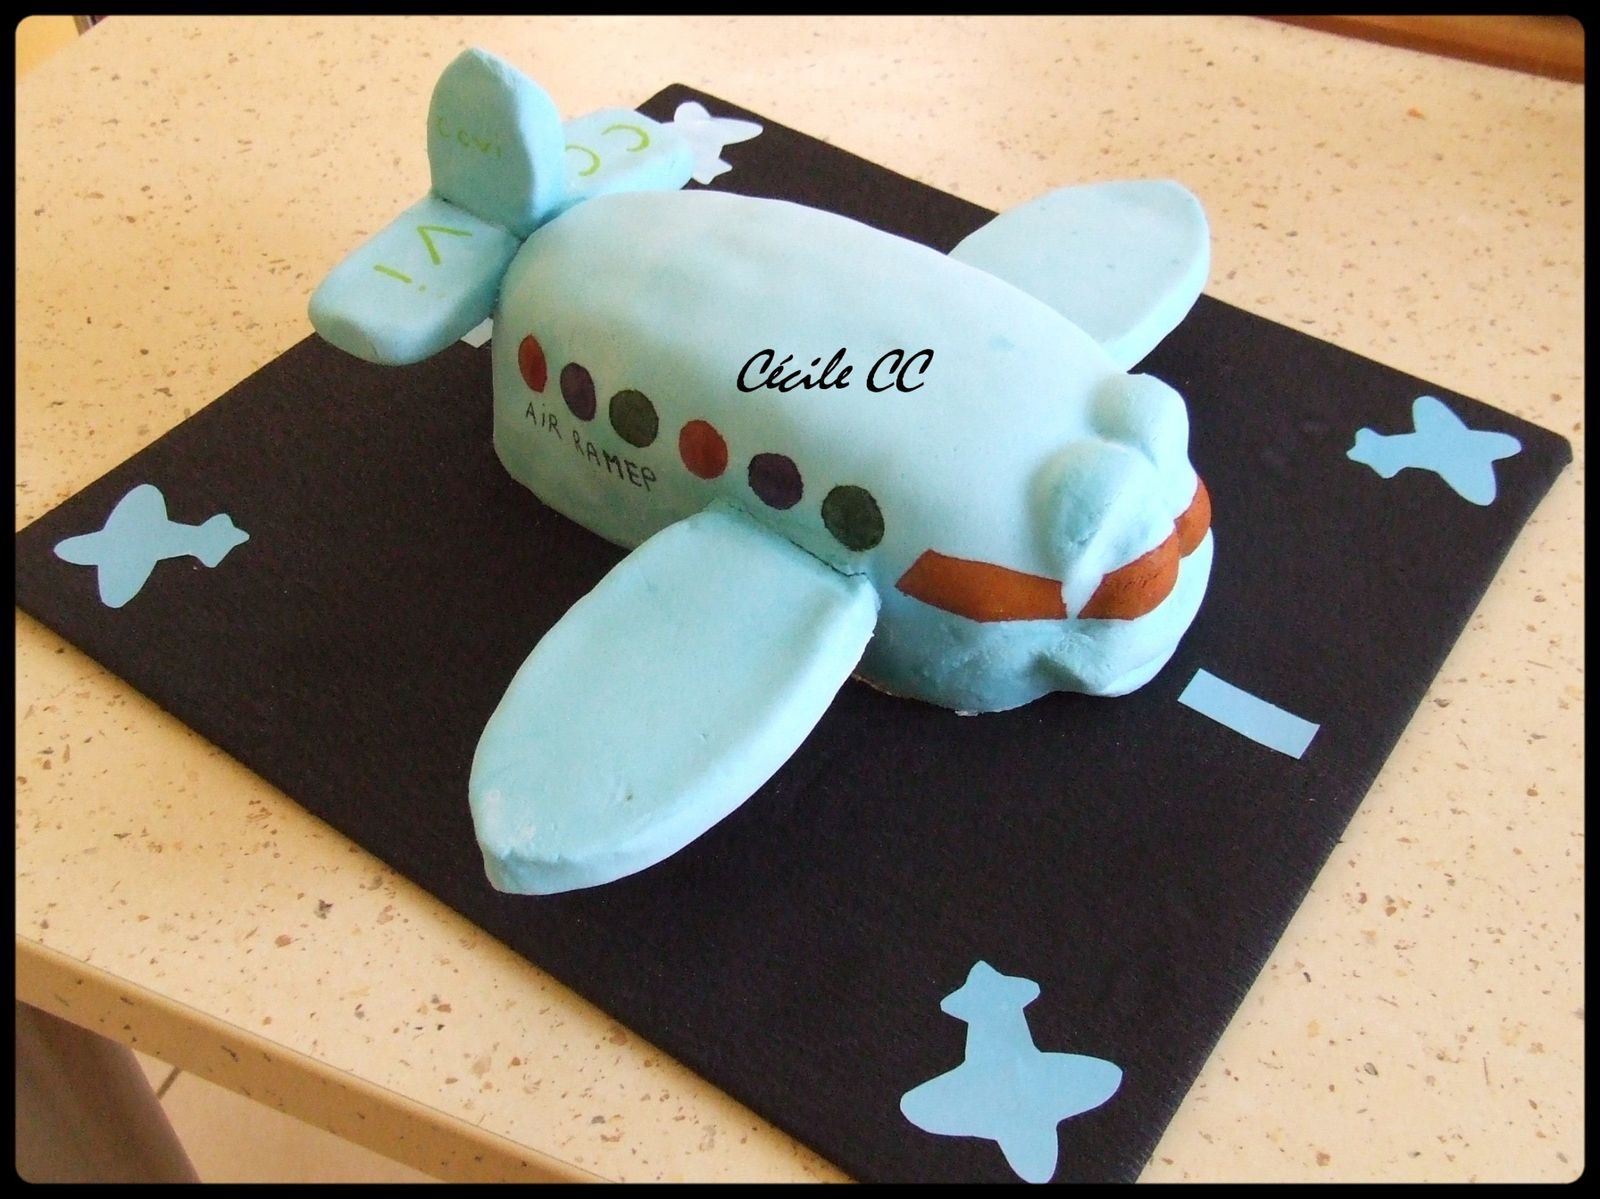 Gateau forme avion